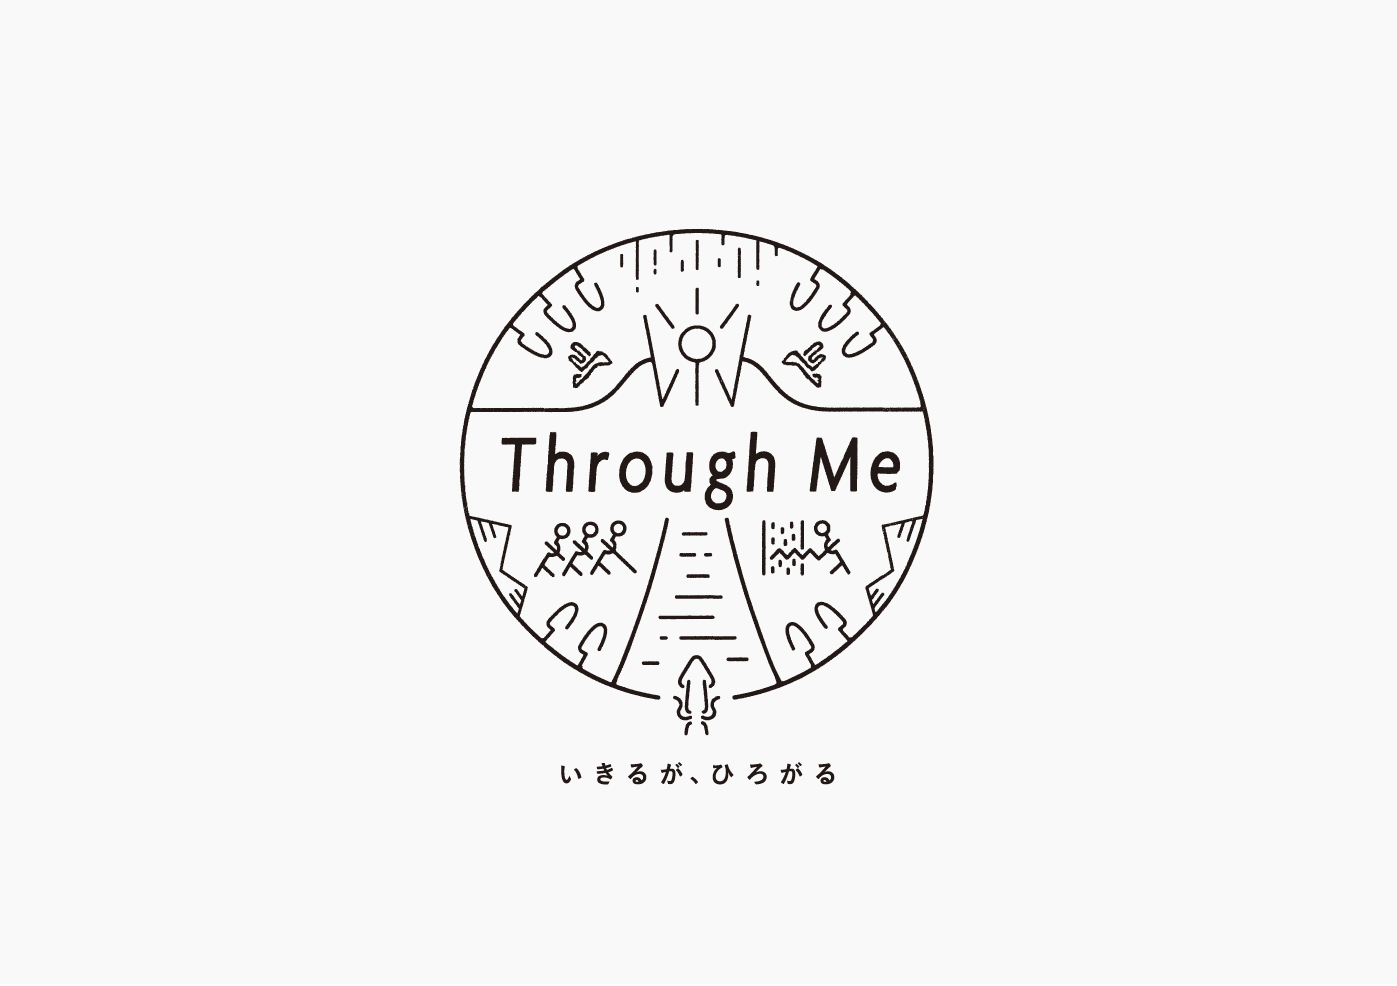 Through Me